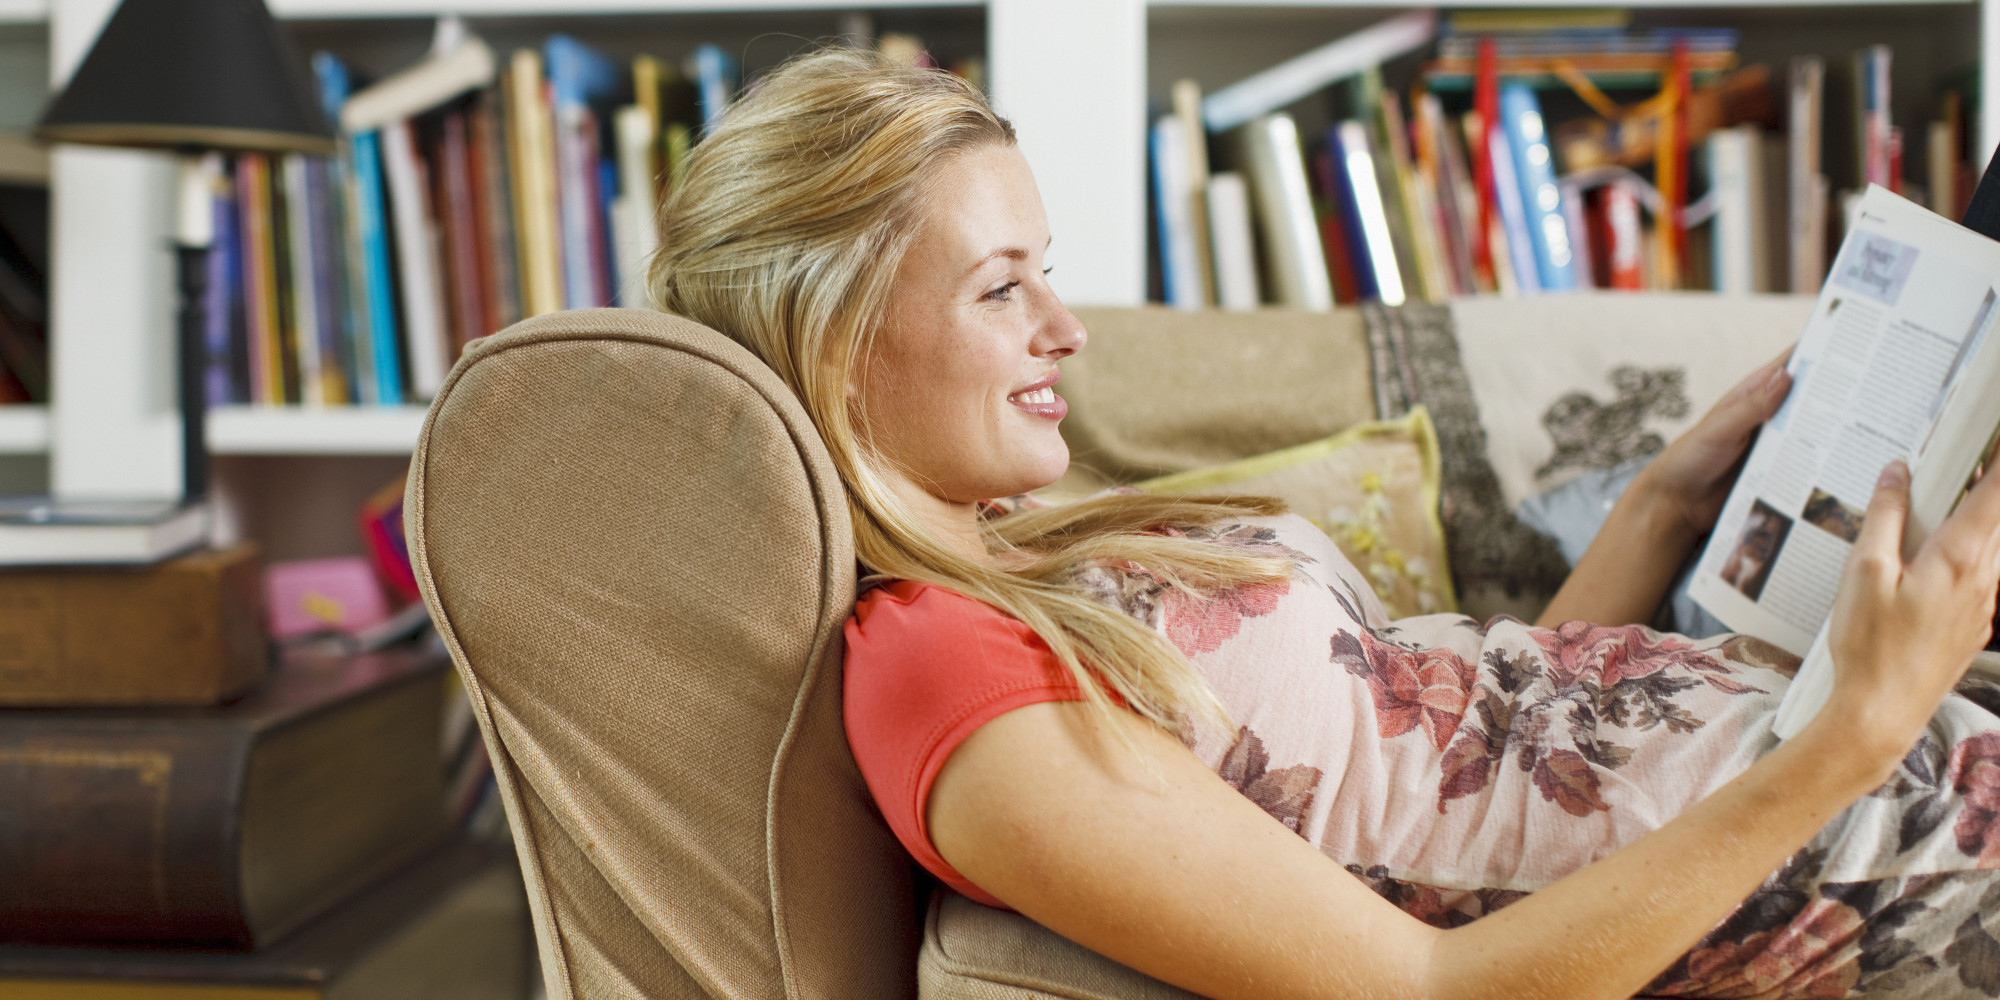 reading books is better than watching tv